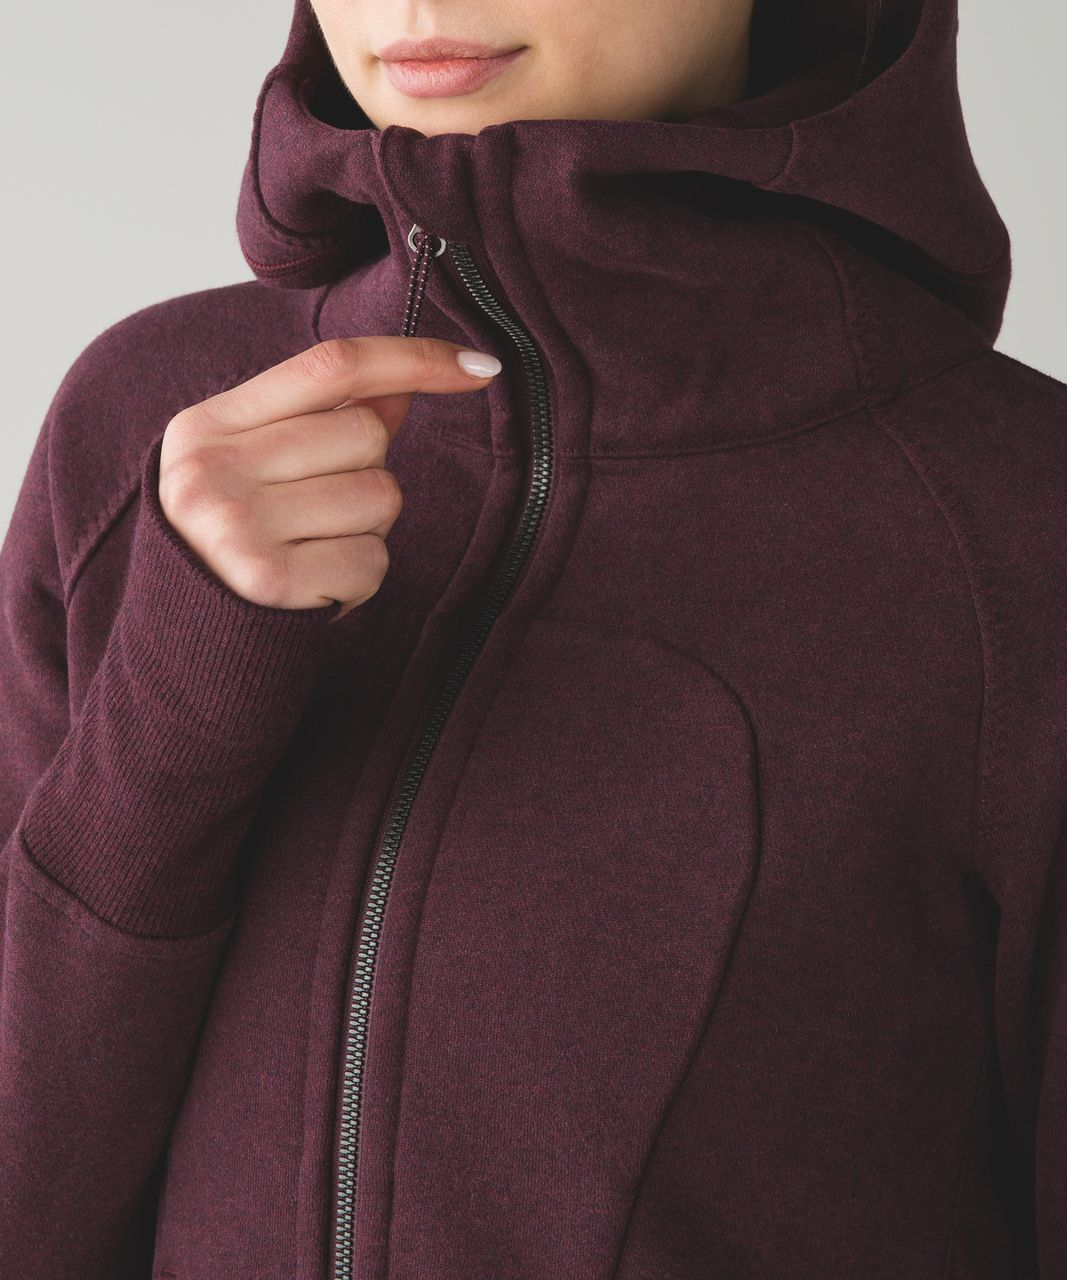 Lululemon Pleat To Street Hoodie - Heathered Bordeaux Drama